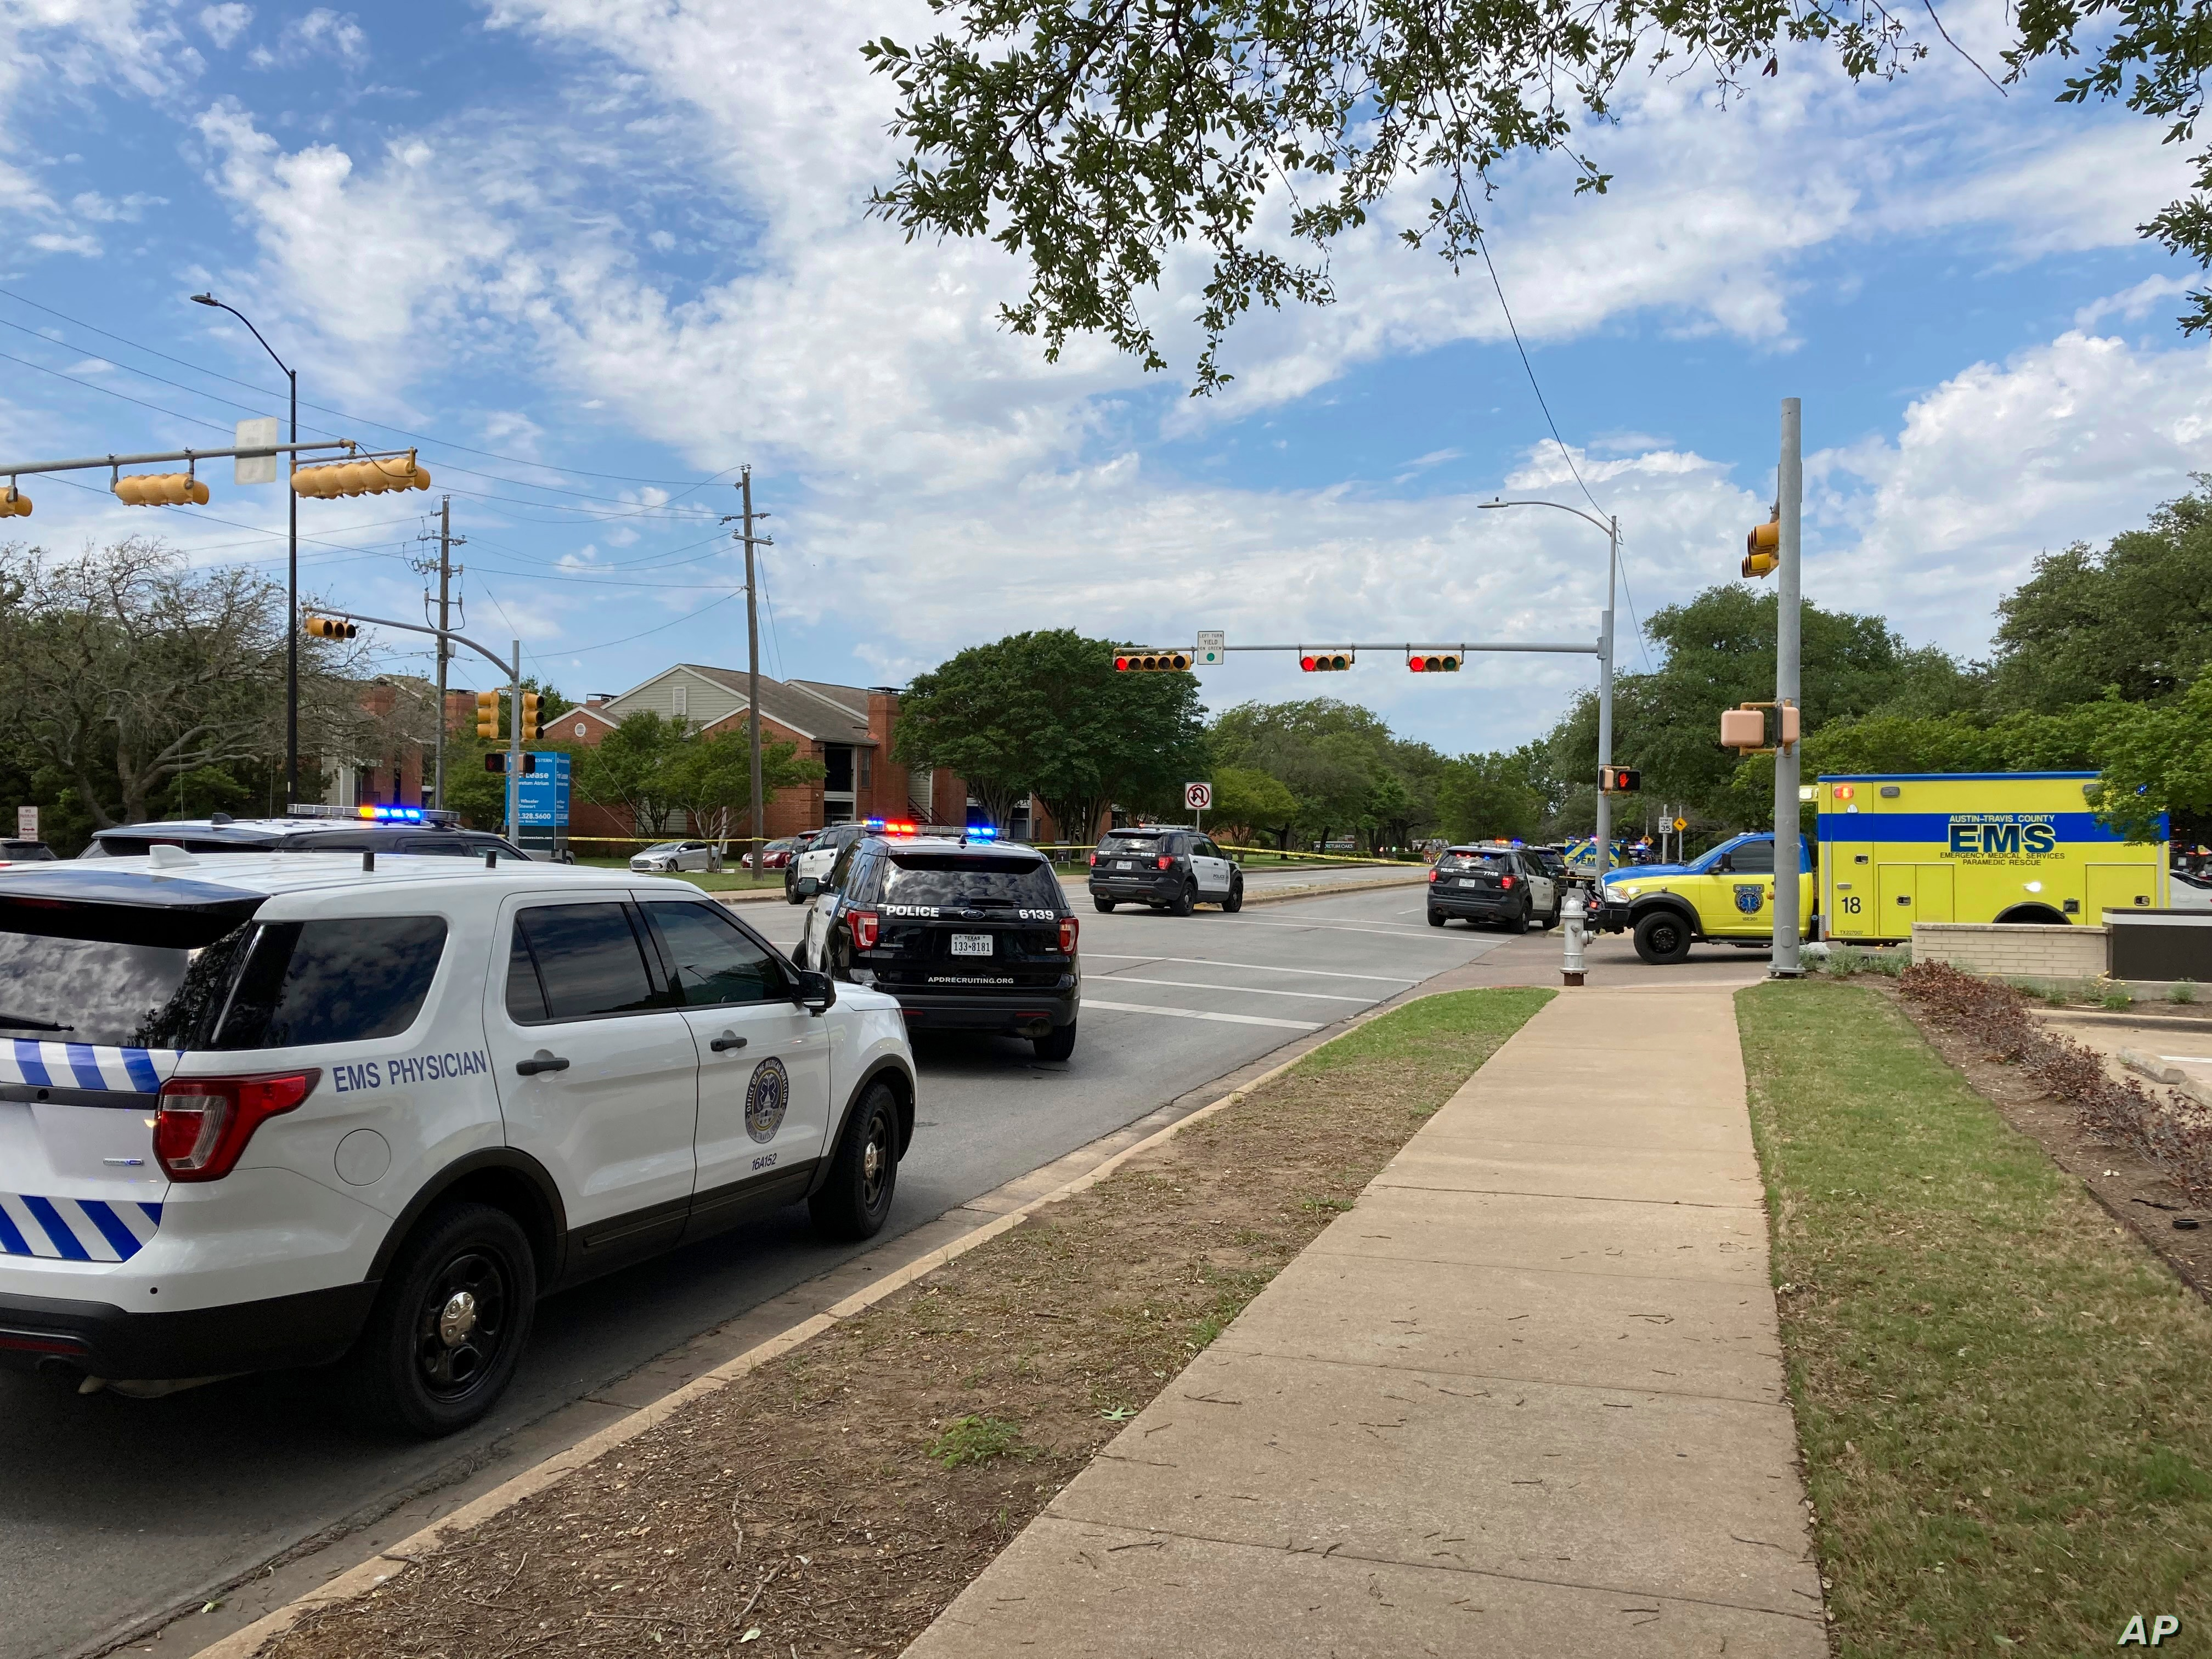 Three dead in 'active attack' shooting incident in northwest Austin, medics say